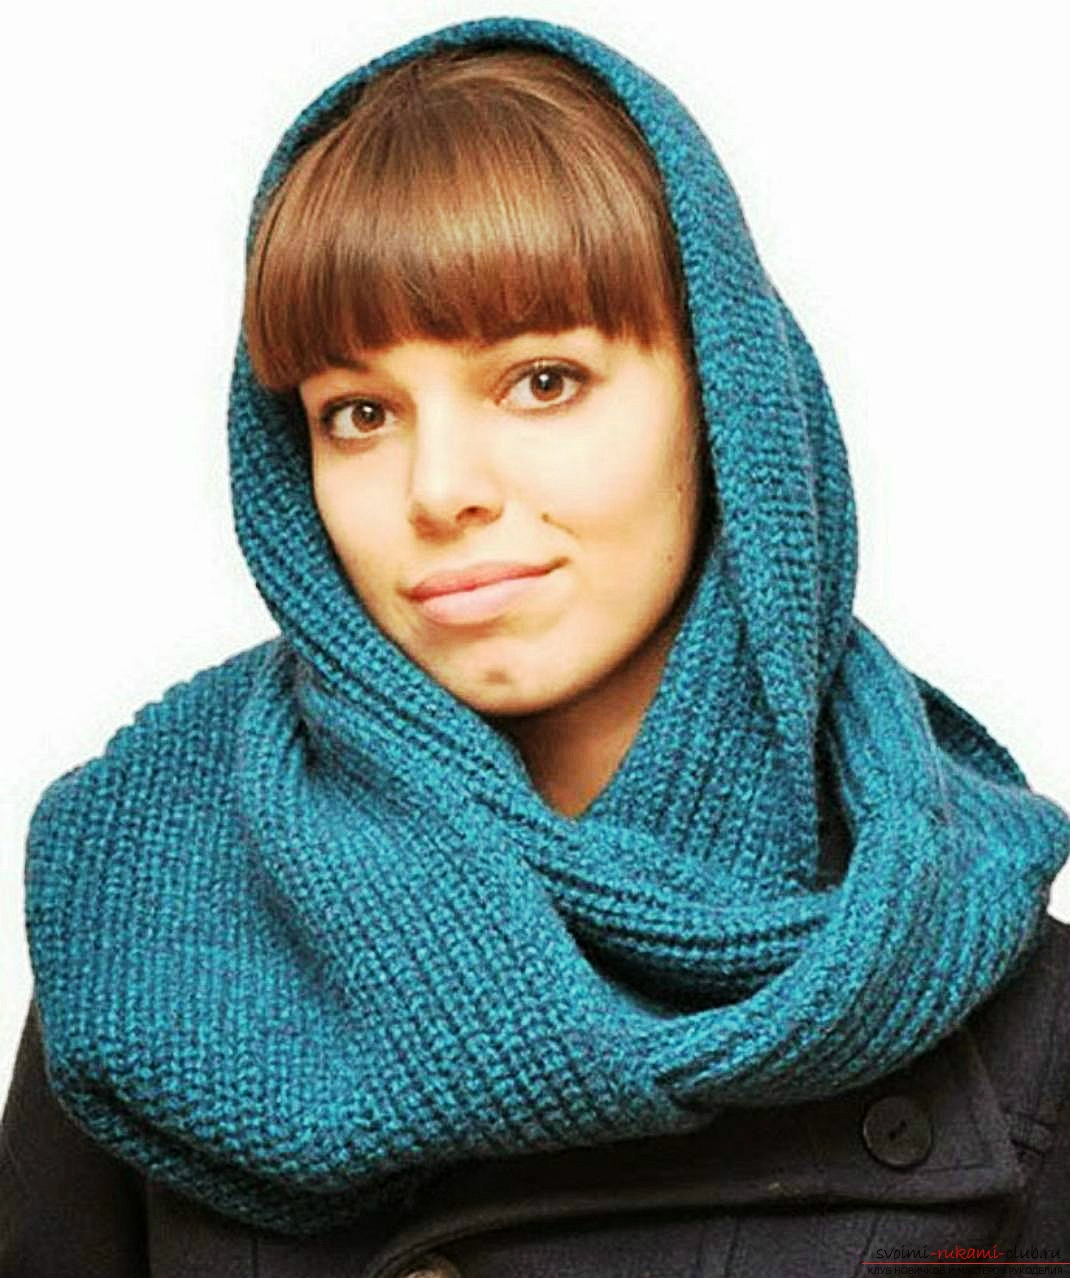 knitted knitting needles with a delicate openwork scarf-yoke. Photo №1